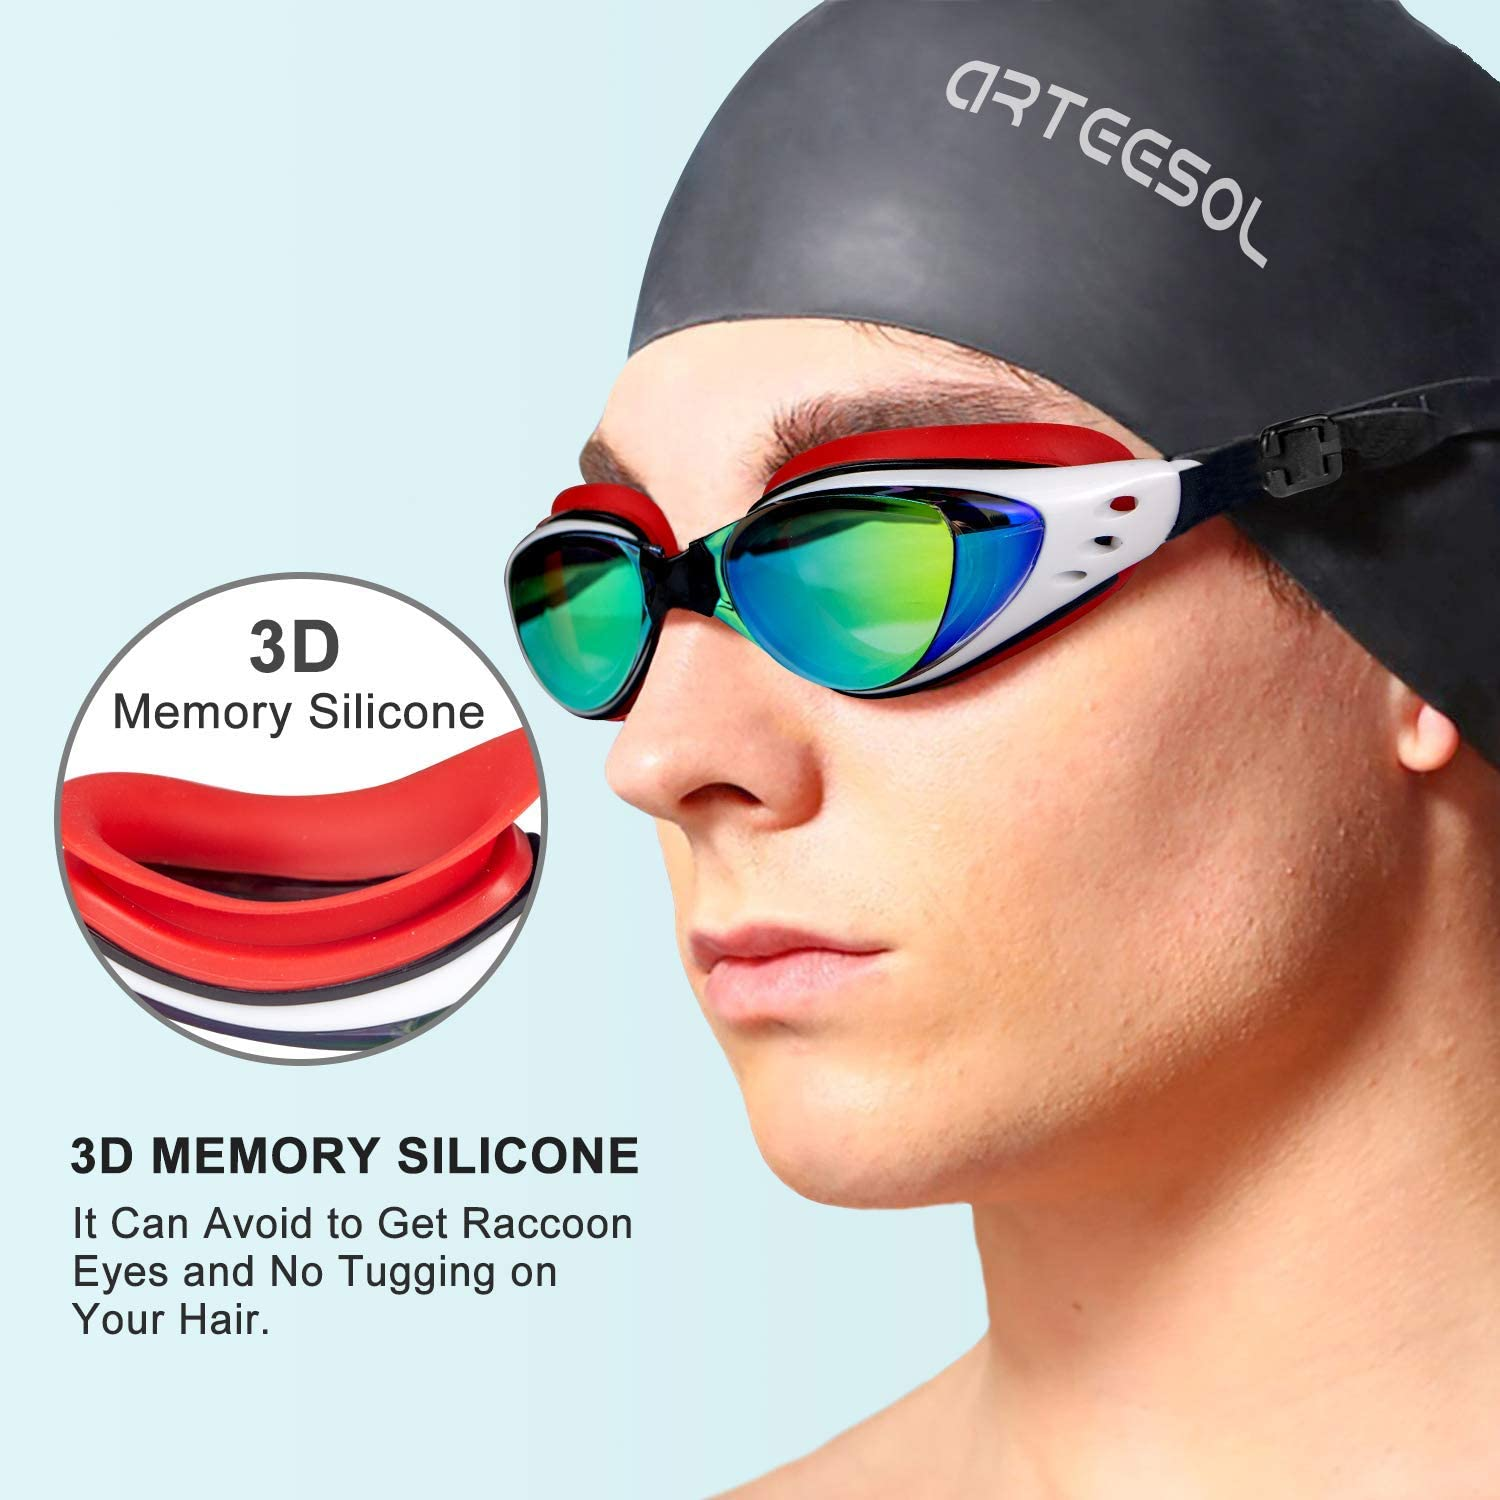 arteesol Swim Goggles Anti Fog Swimming Goggles Crystal Clear 180/° Panoramic Vision Mirrored with 100/% UV Protective Coating with Protective Case and Earplug for Adults and Kids